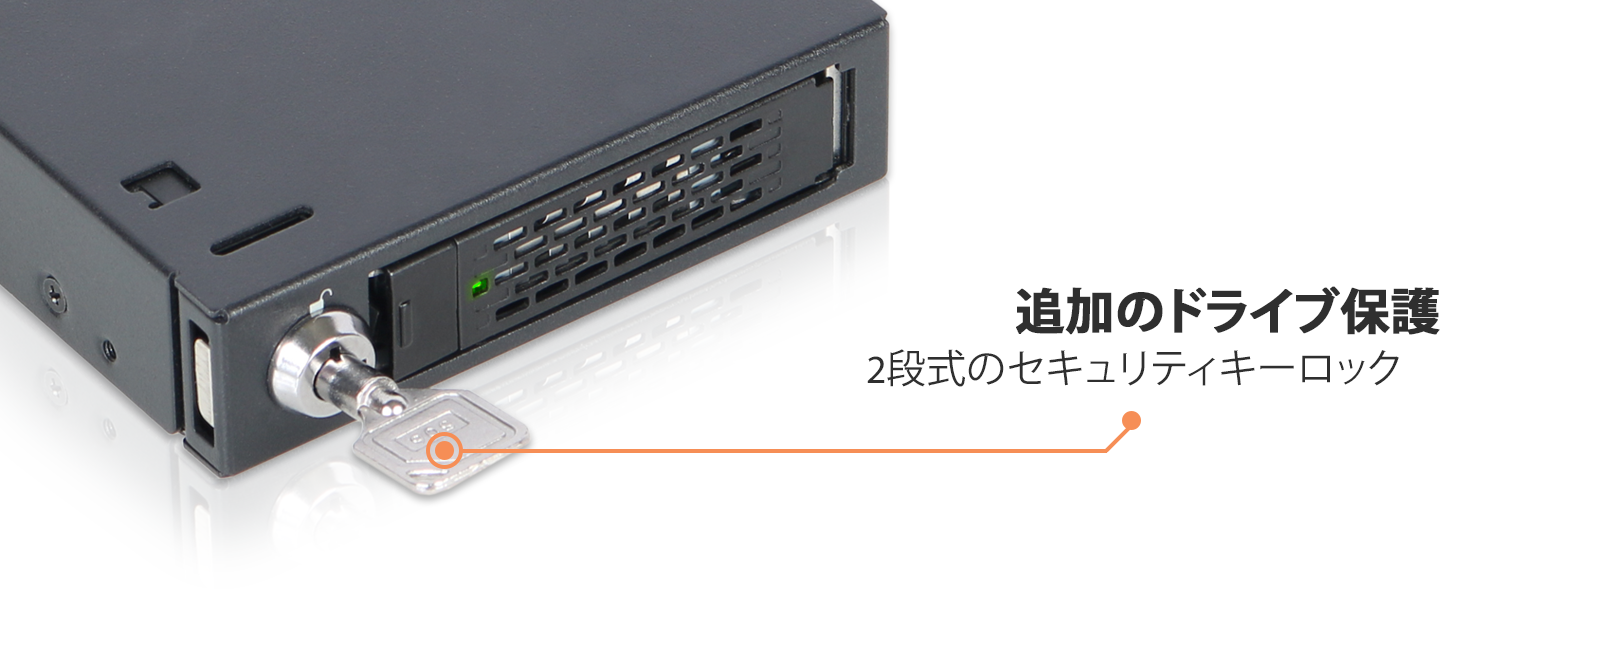 mb601m2k-1b additional drive protection